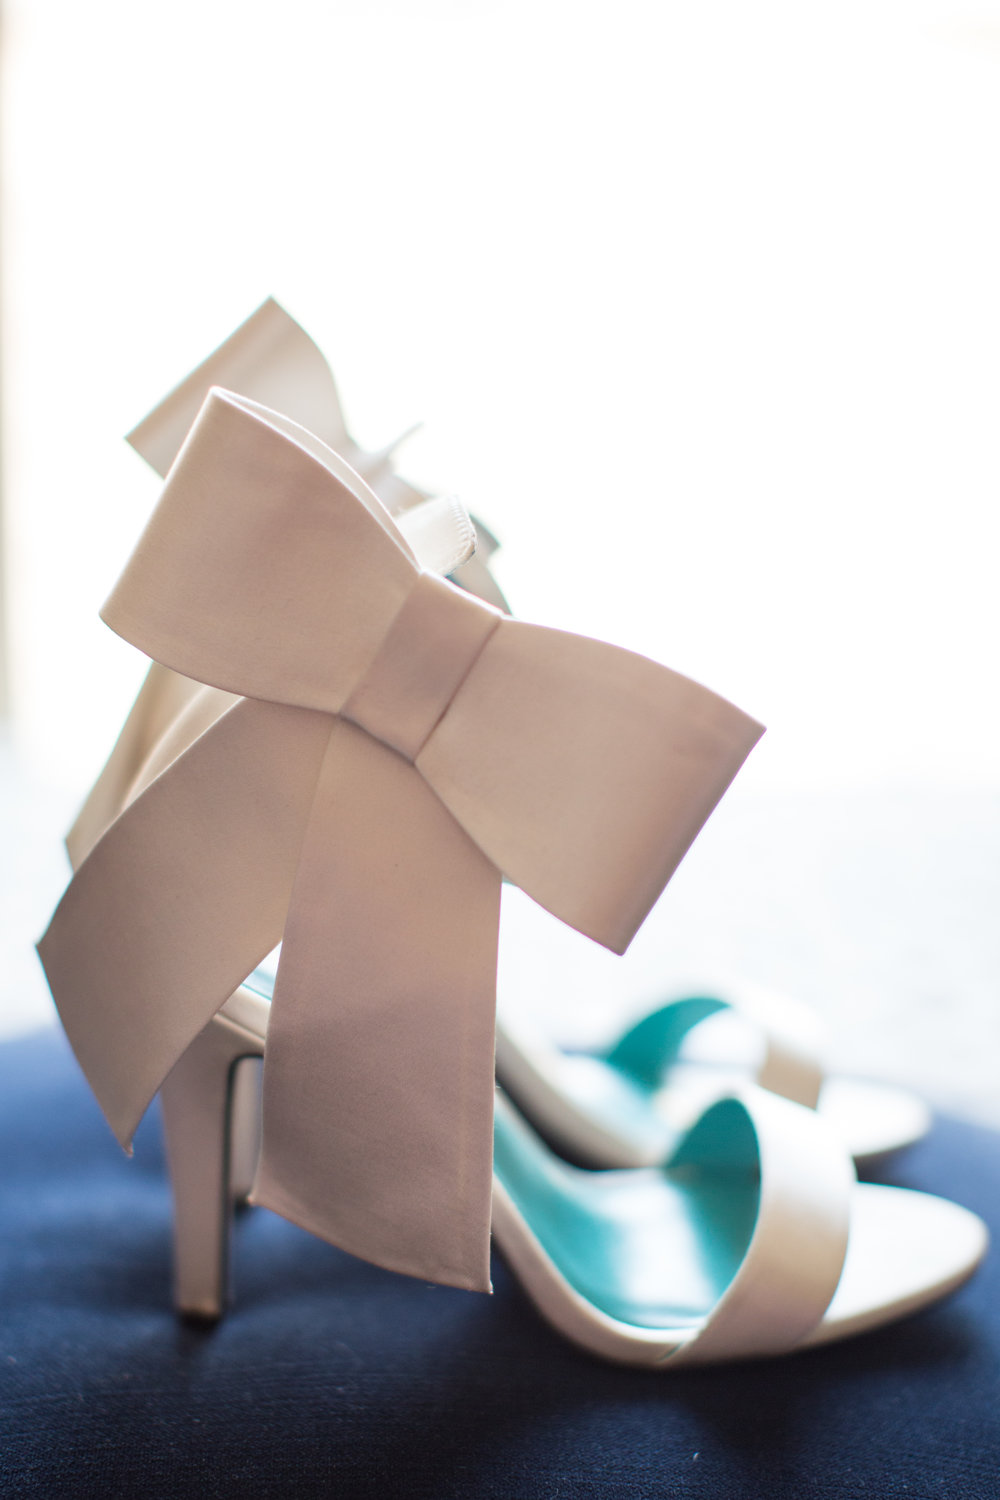 Stunning Brides Wedding Shoes with Bow for this Axis Pioneer Square Wedding Day